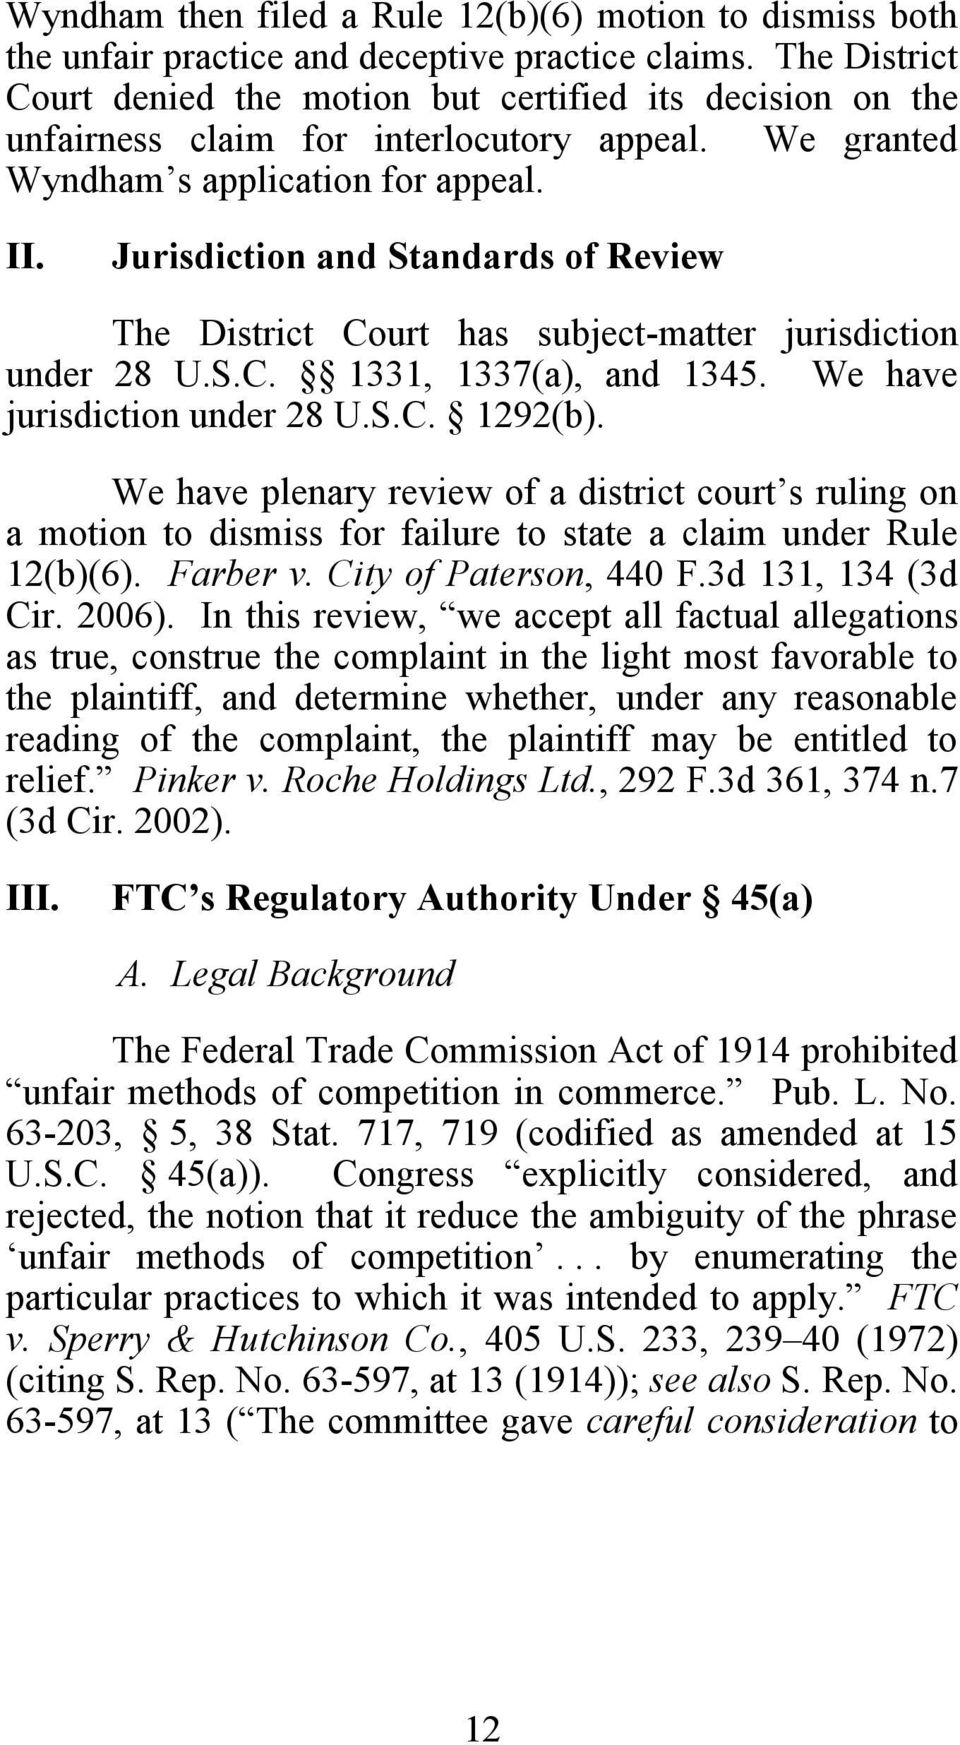 Jurisdiction and Standards of Review The District Court has subject-matter jurisdiction under 28 U.S.C. 1331, 1337(a), and 1345. We have jurisdiction under 28 U.S.C. 1292(b).